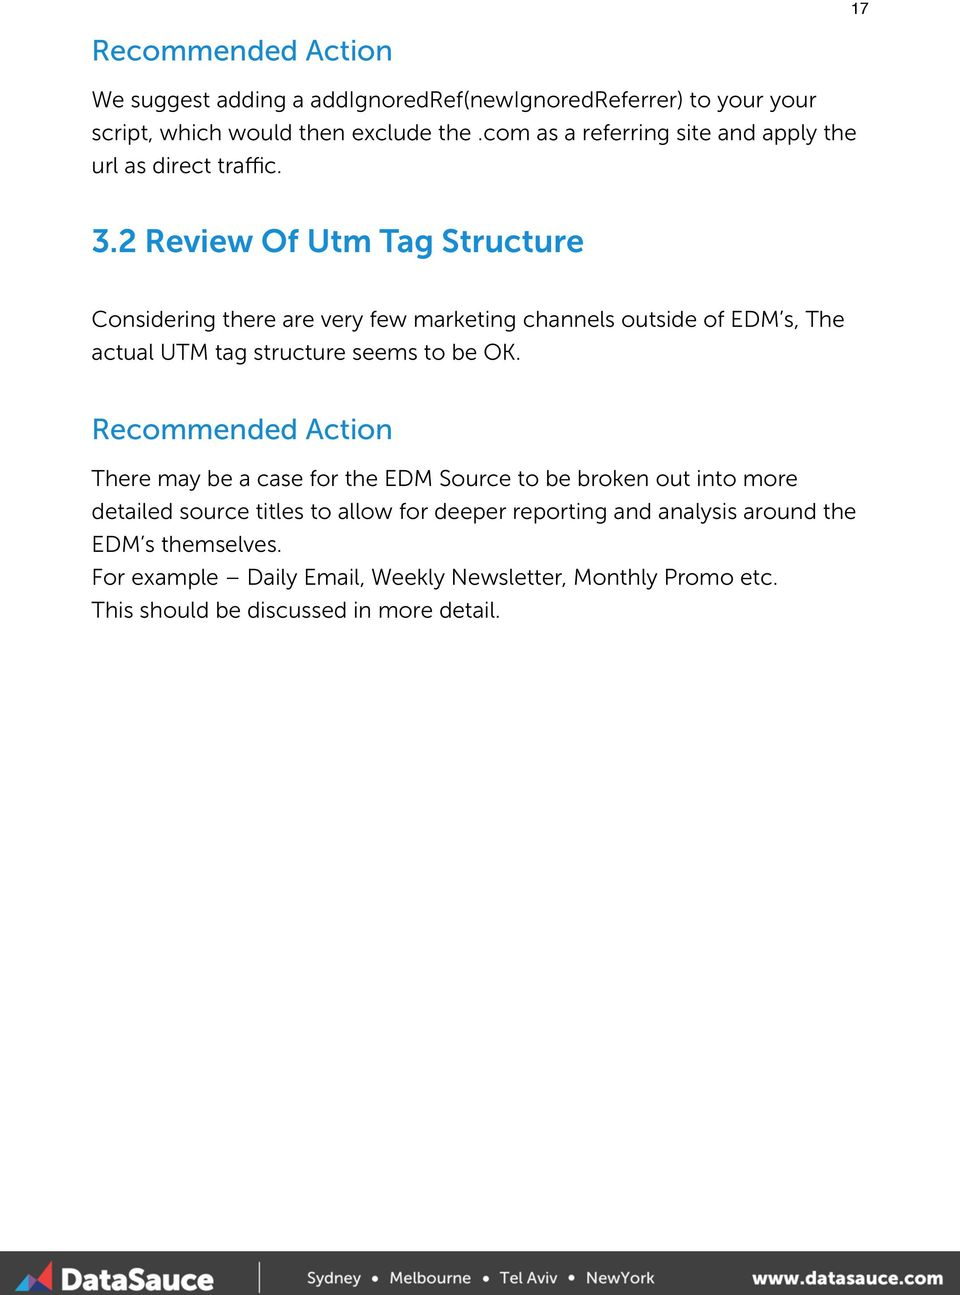 2 Review Of Utm Tag Structure Considering there are very few marketing channels outside of EDM s, The actual UTM tag structure seems to be OK.